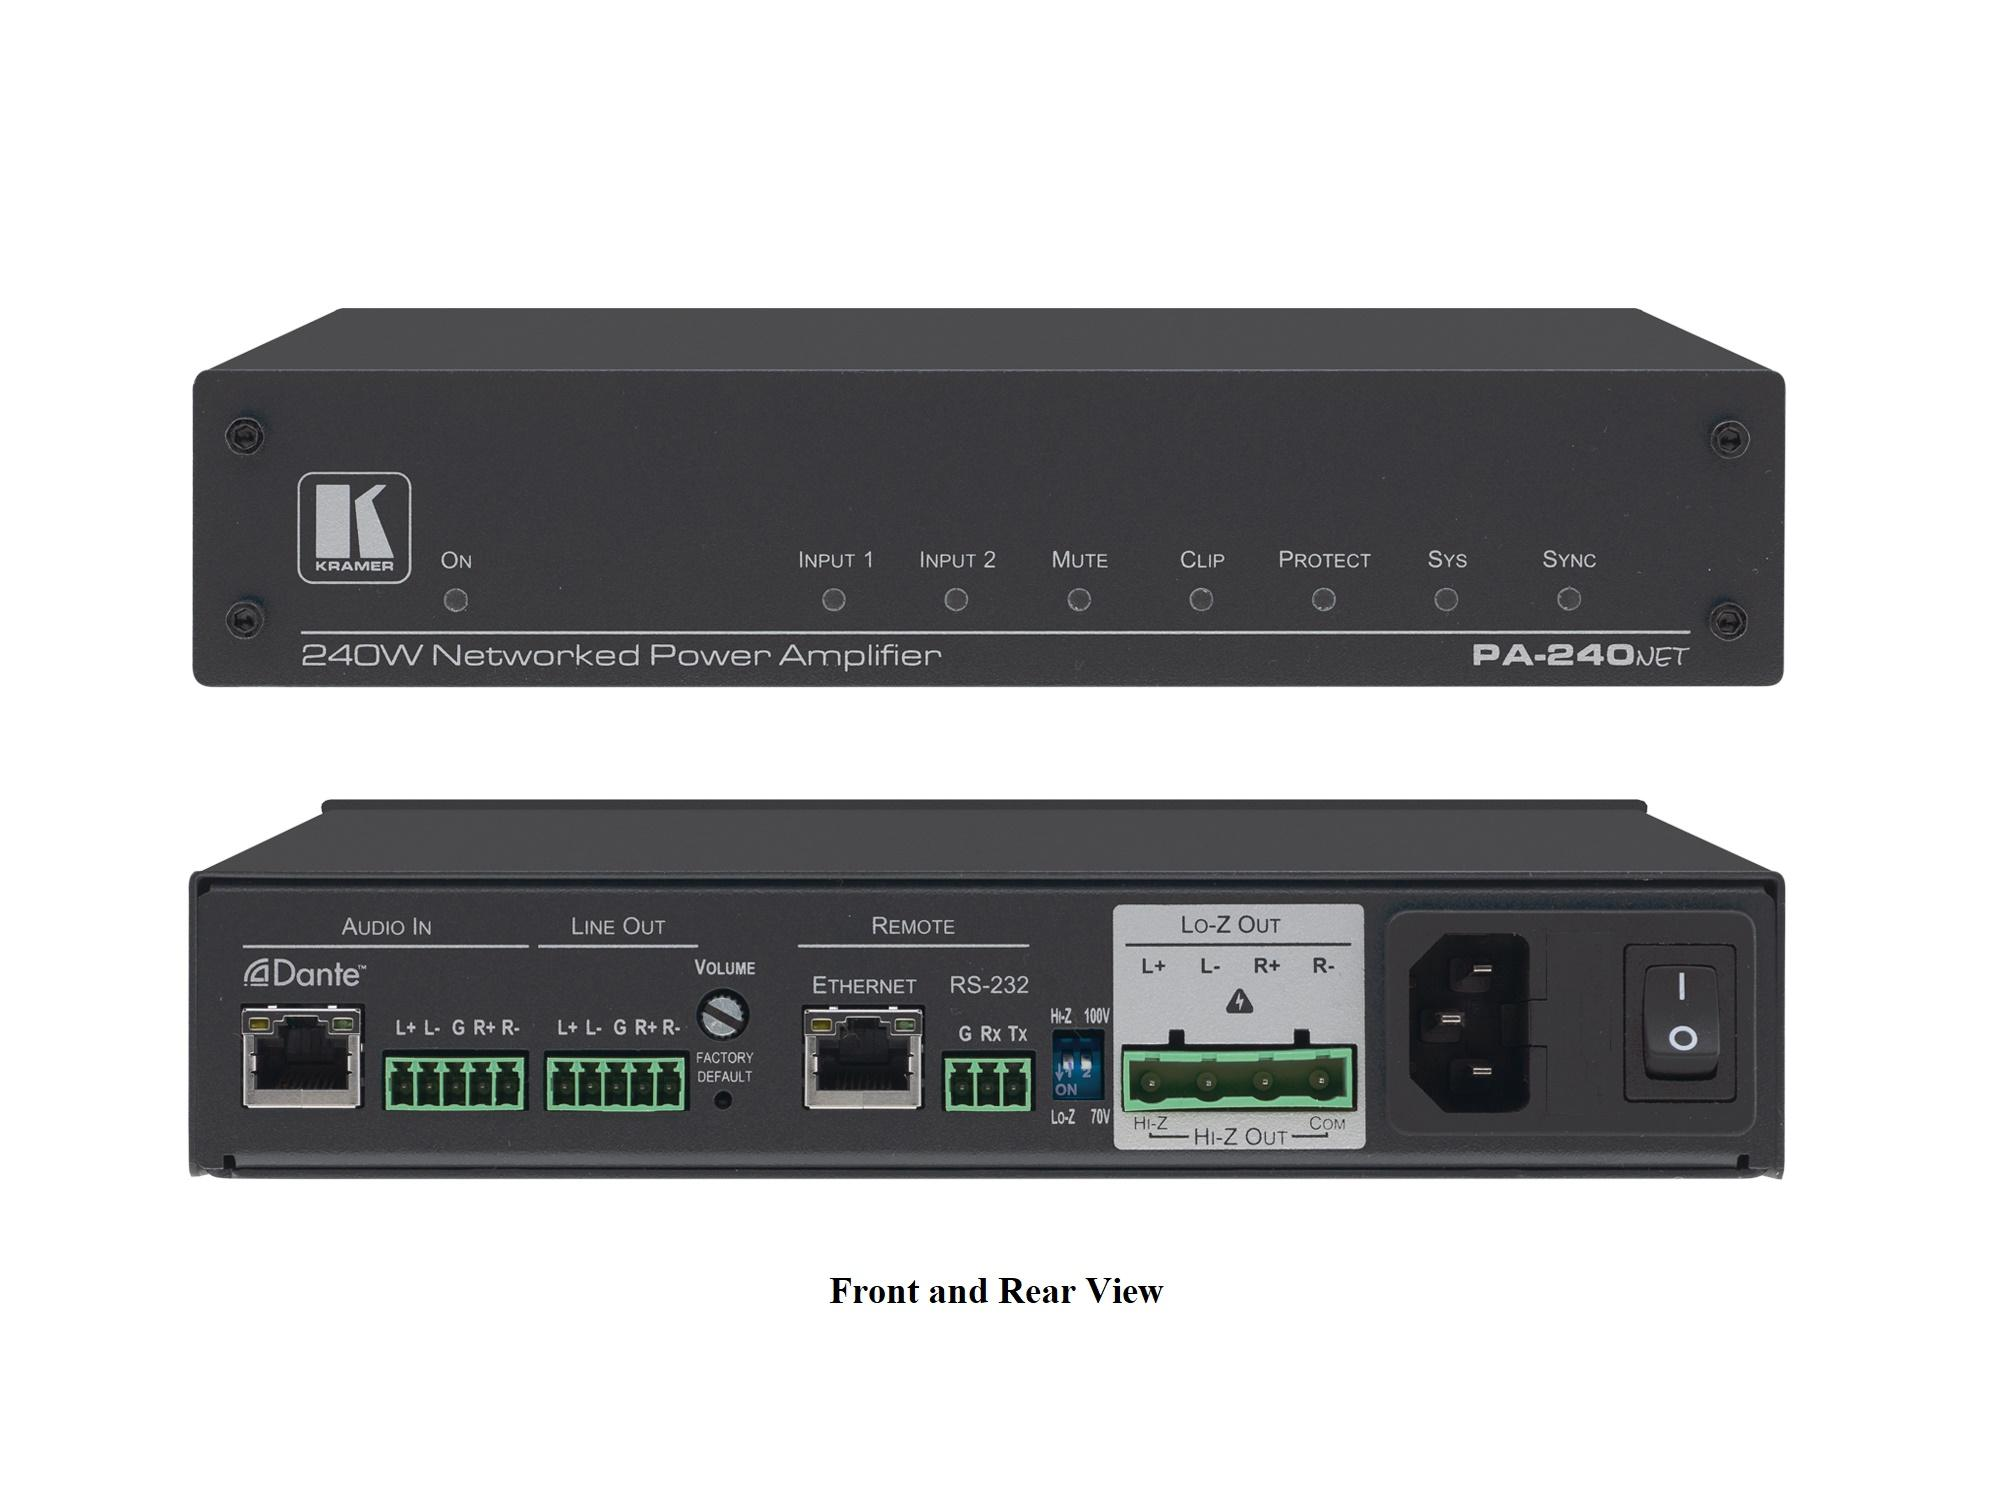 Kramer PA-240Net 240W Networked Power Amplifier